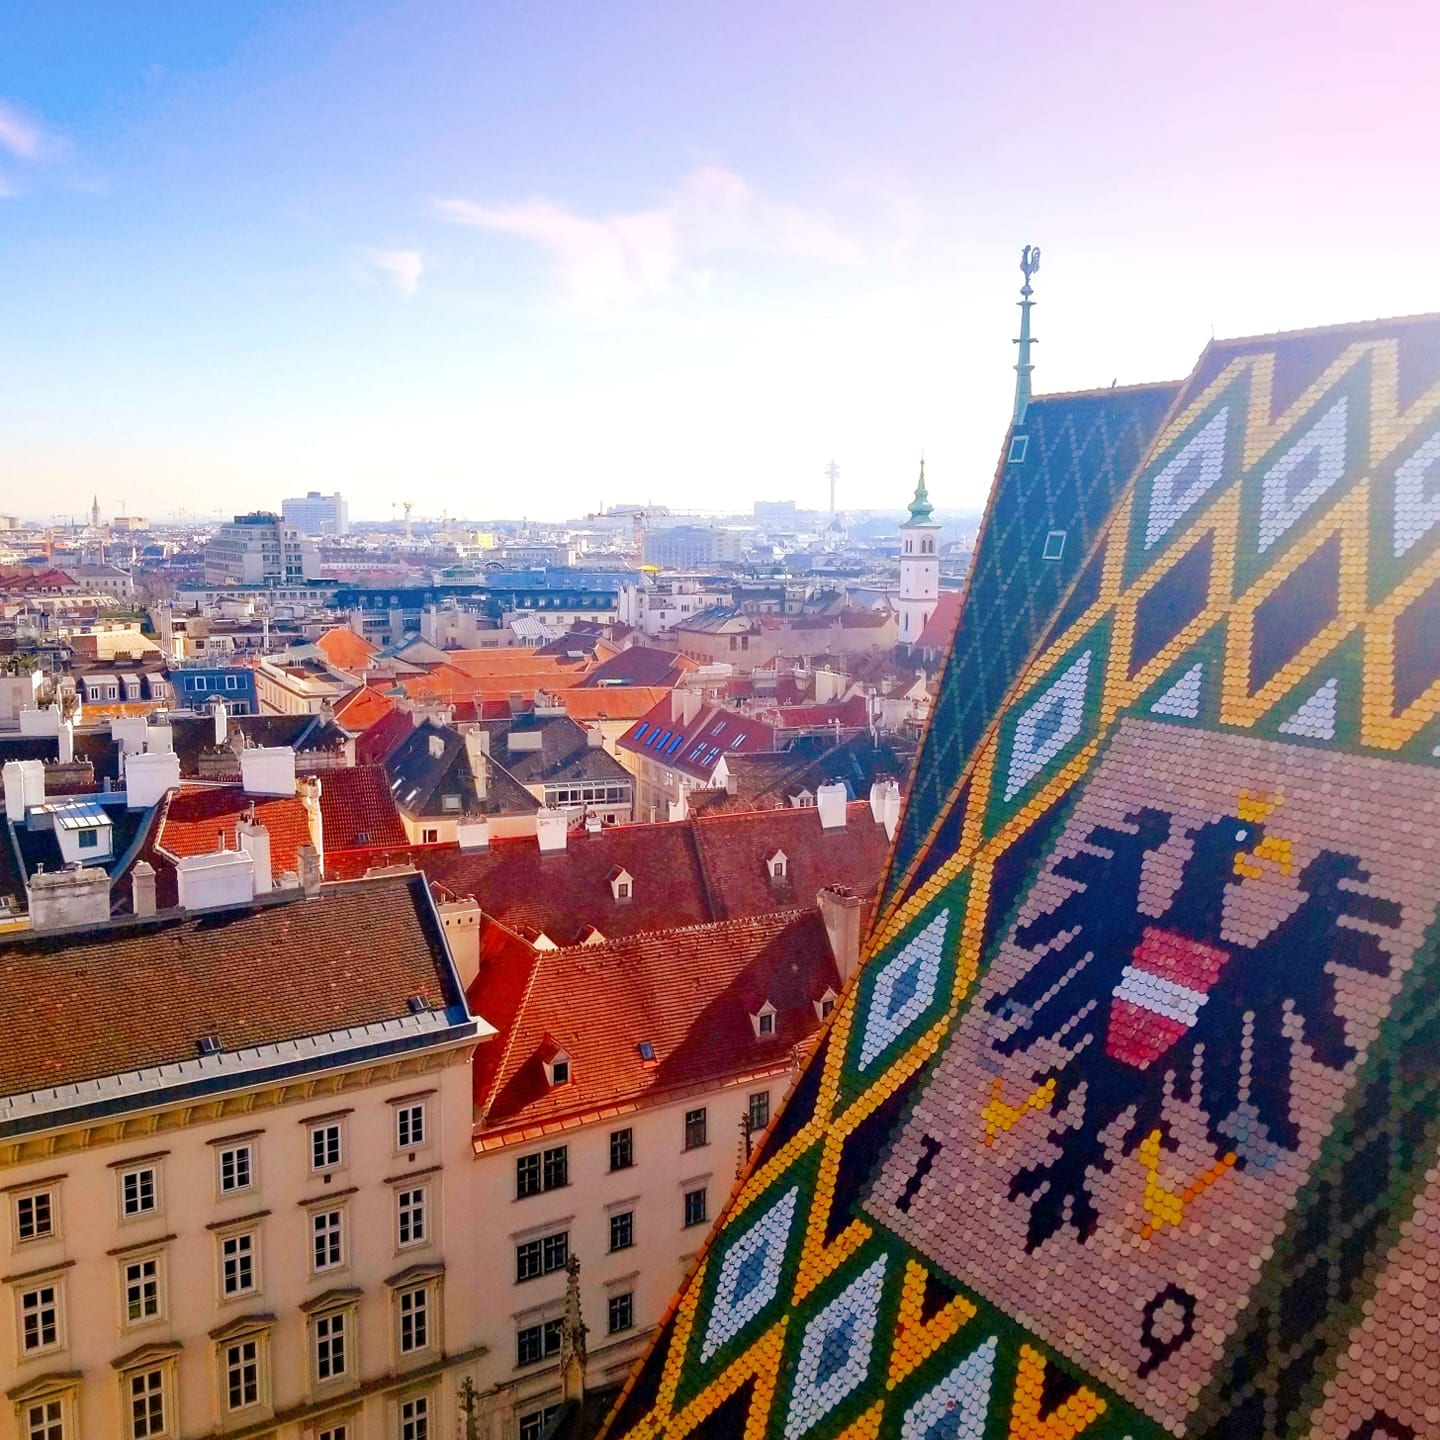 Colorful tiled roof of St. Stephen's Cathedral in Vienna